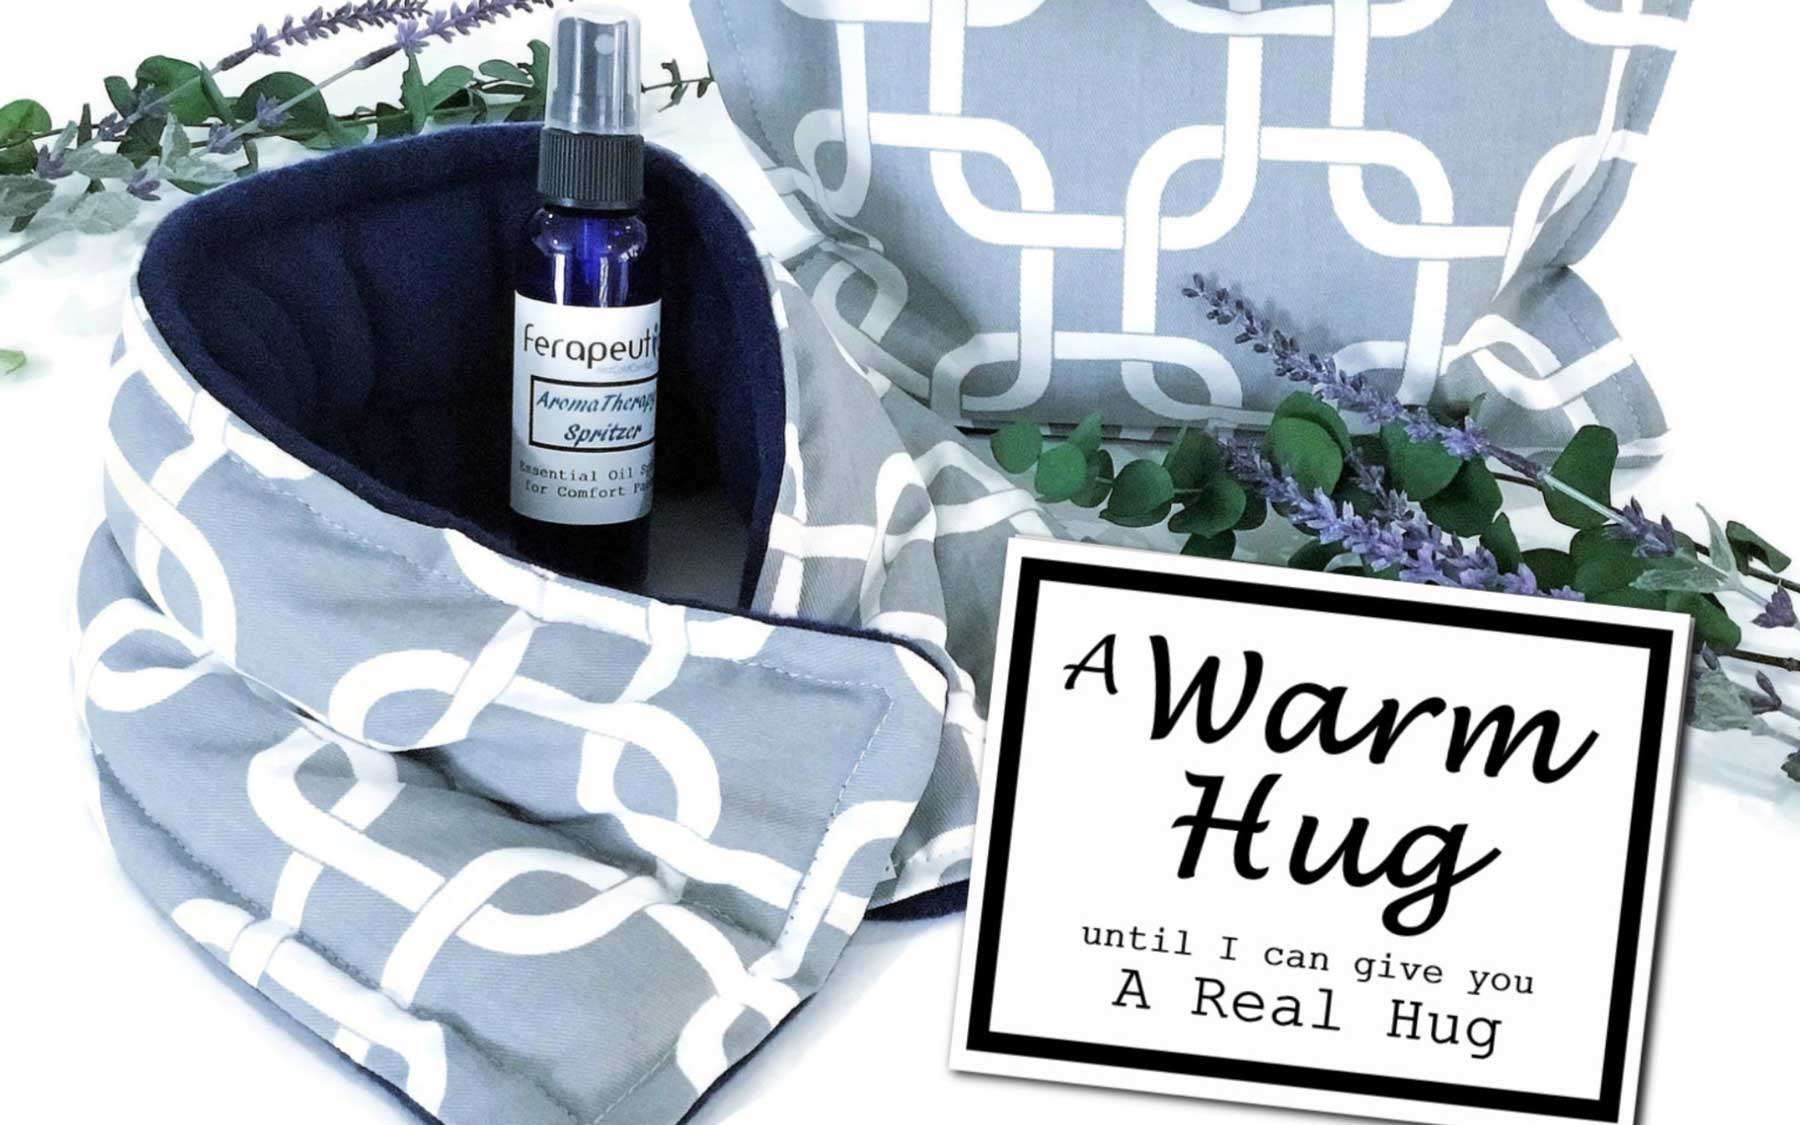 Etsy Care Package with heating pad, pillow, and pillow spray